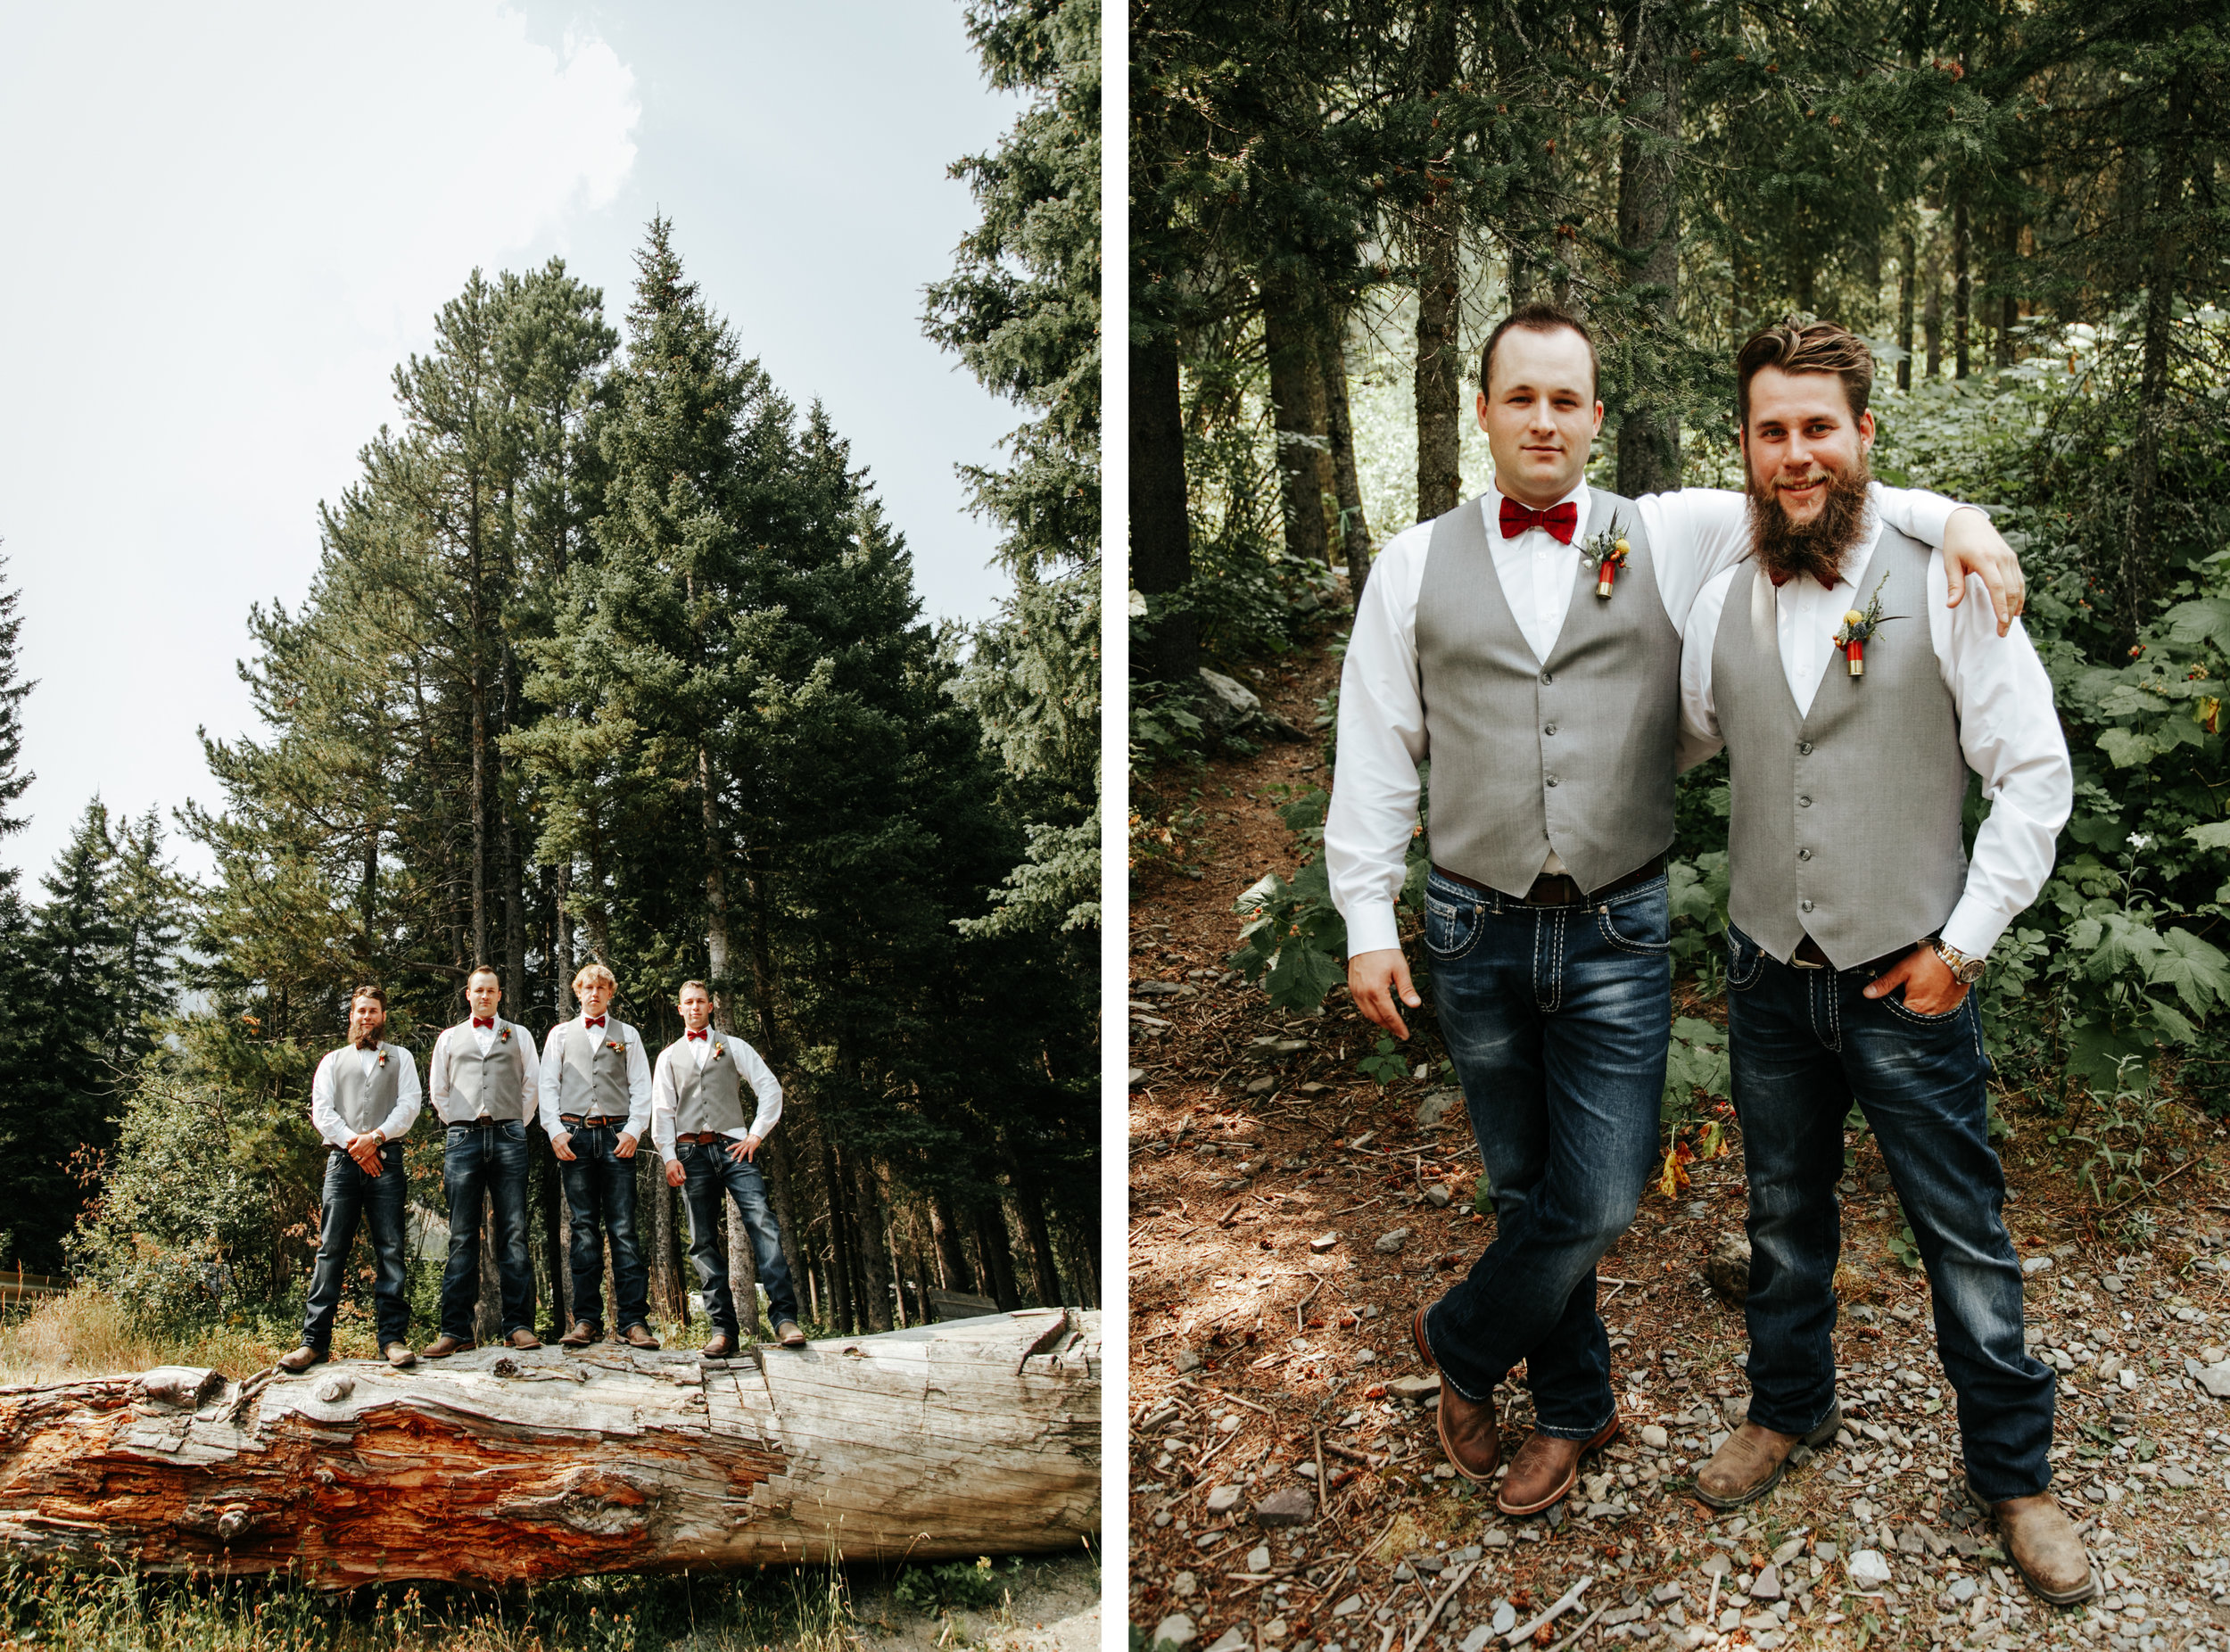 castle-mountain-wedding-photographer-love-and-be-loved-photography-lethbridge-pincher-creek-crowsnest-pass-yannick-rylee-photo-image-picture-113.jpg